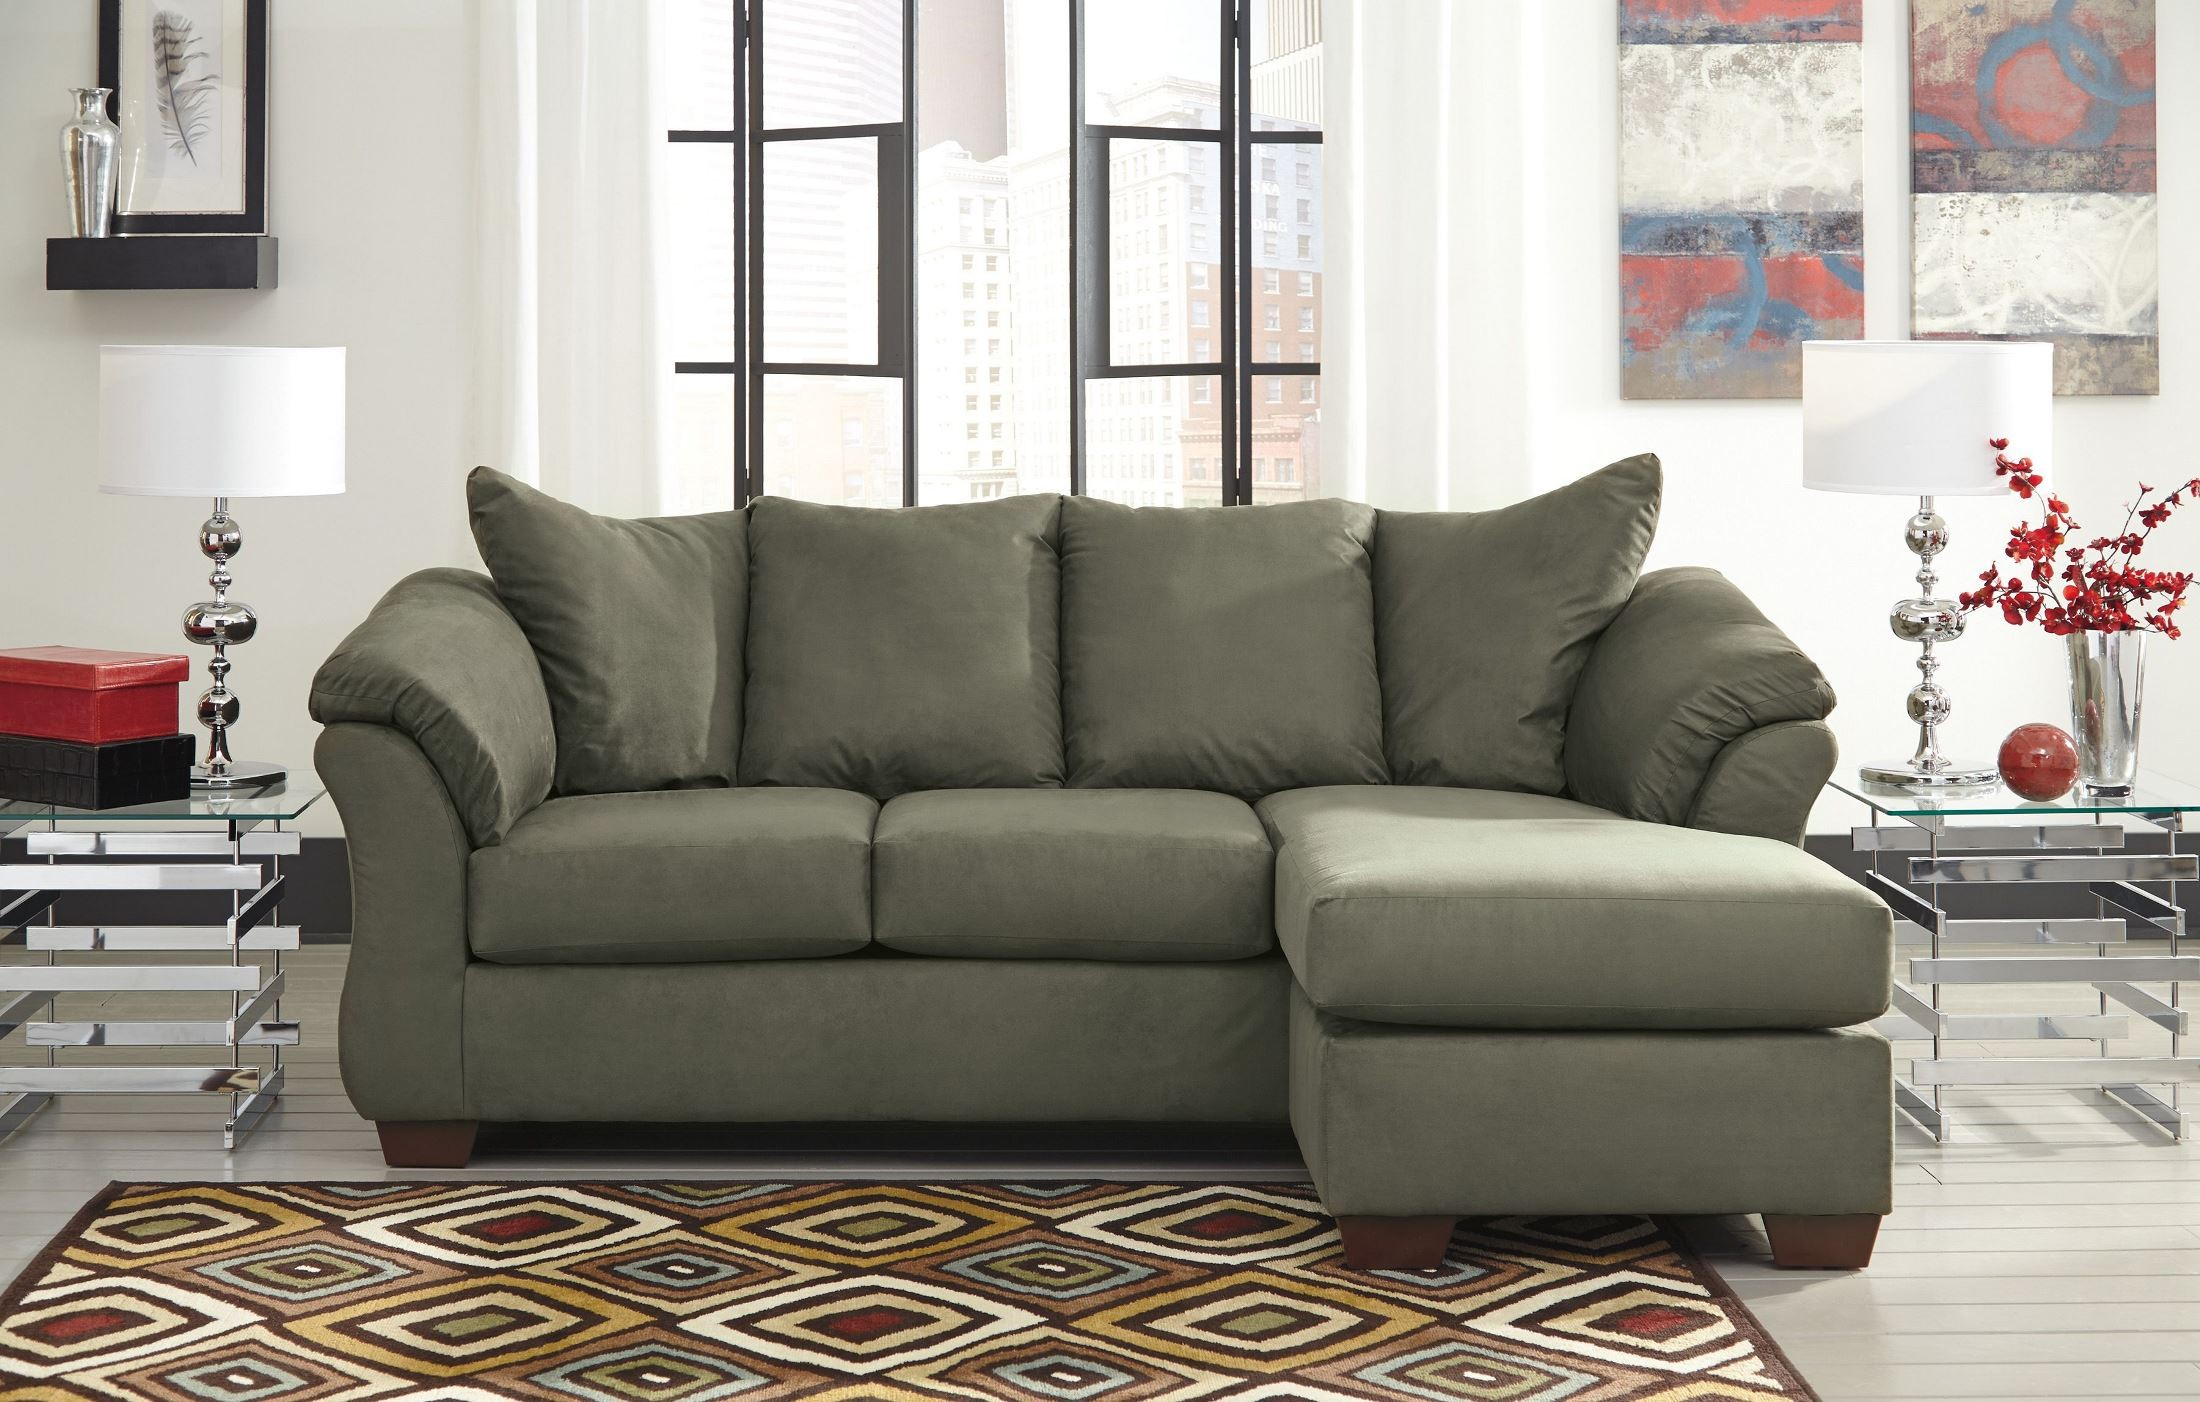 ashley furniture sofa sales grey colour scheme ideas darcy sage chaise sectional from 7500318